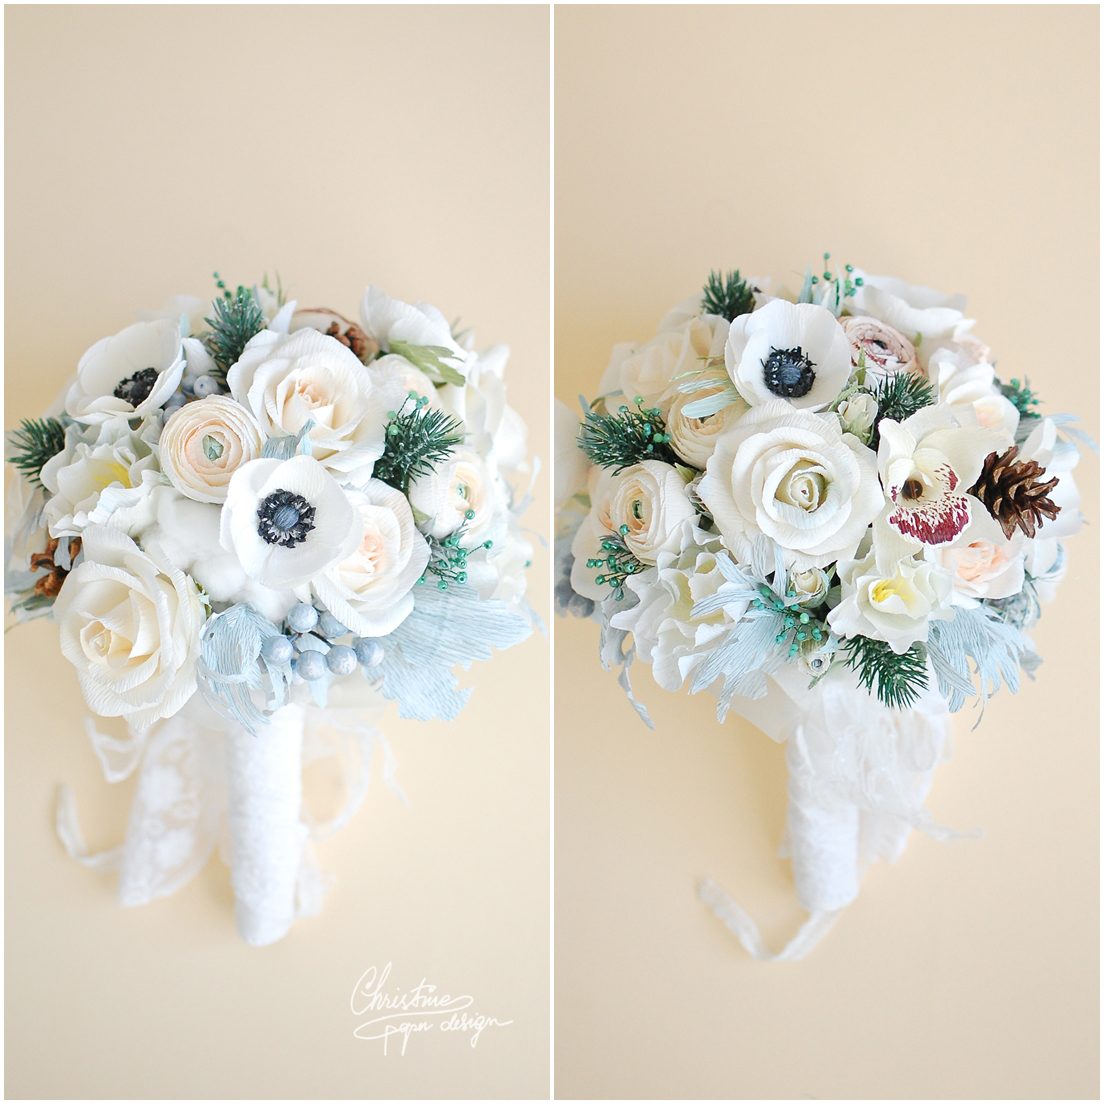 4Christine paper design - paper flowers wedding bouquet